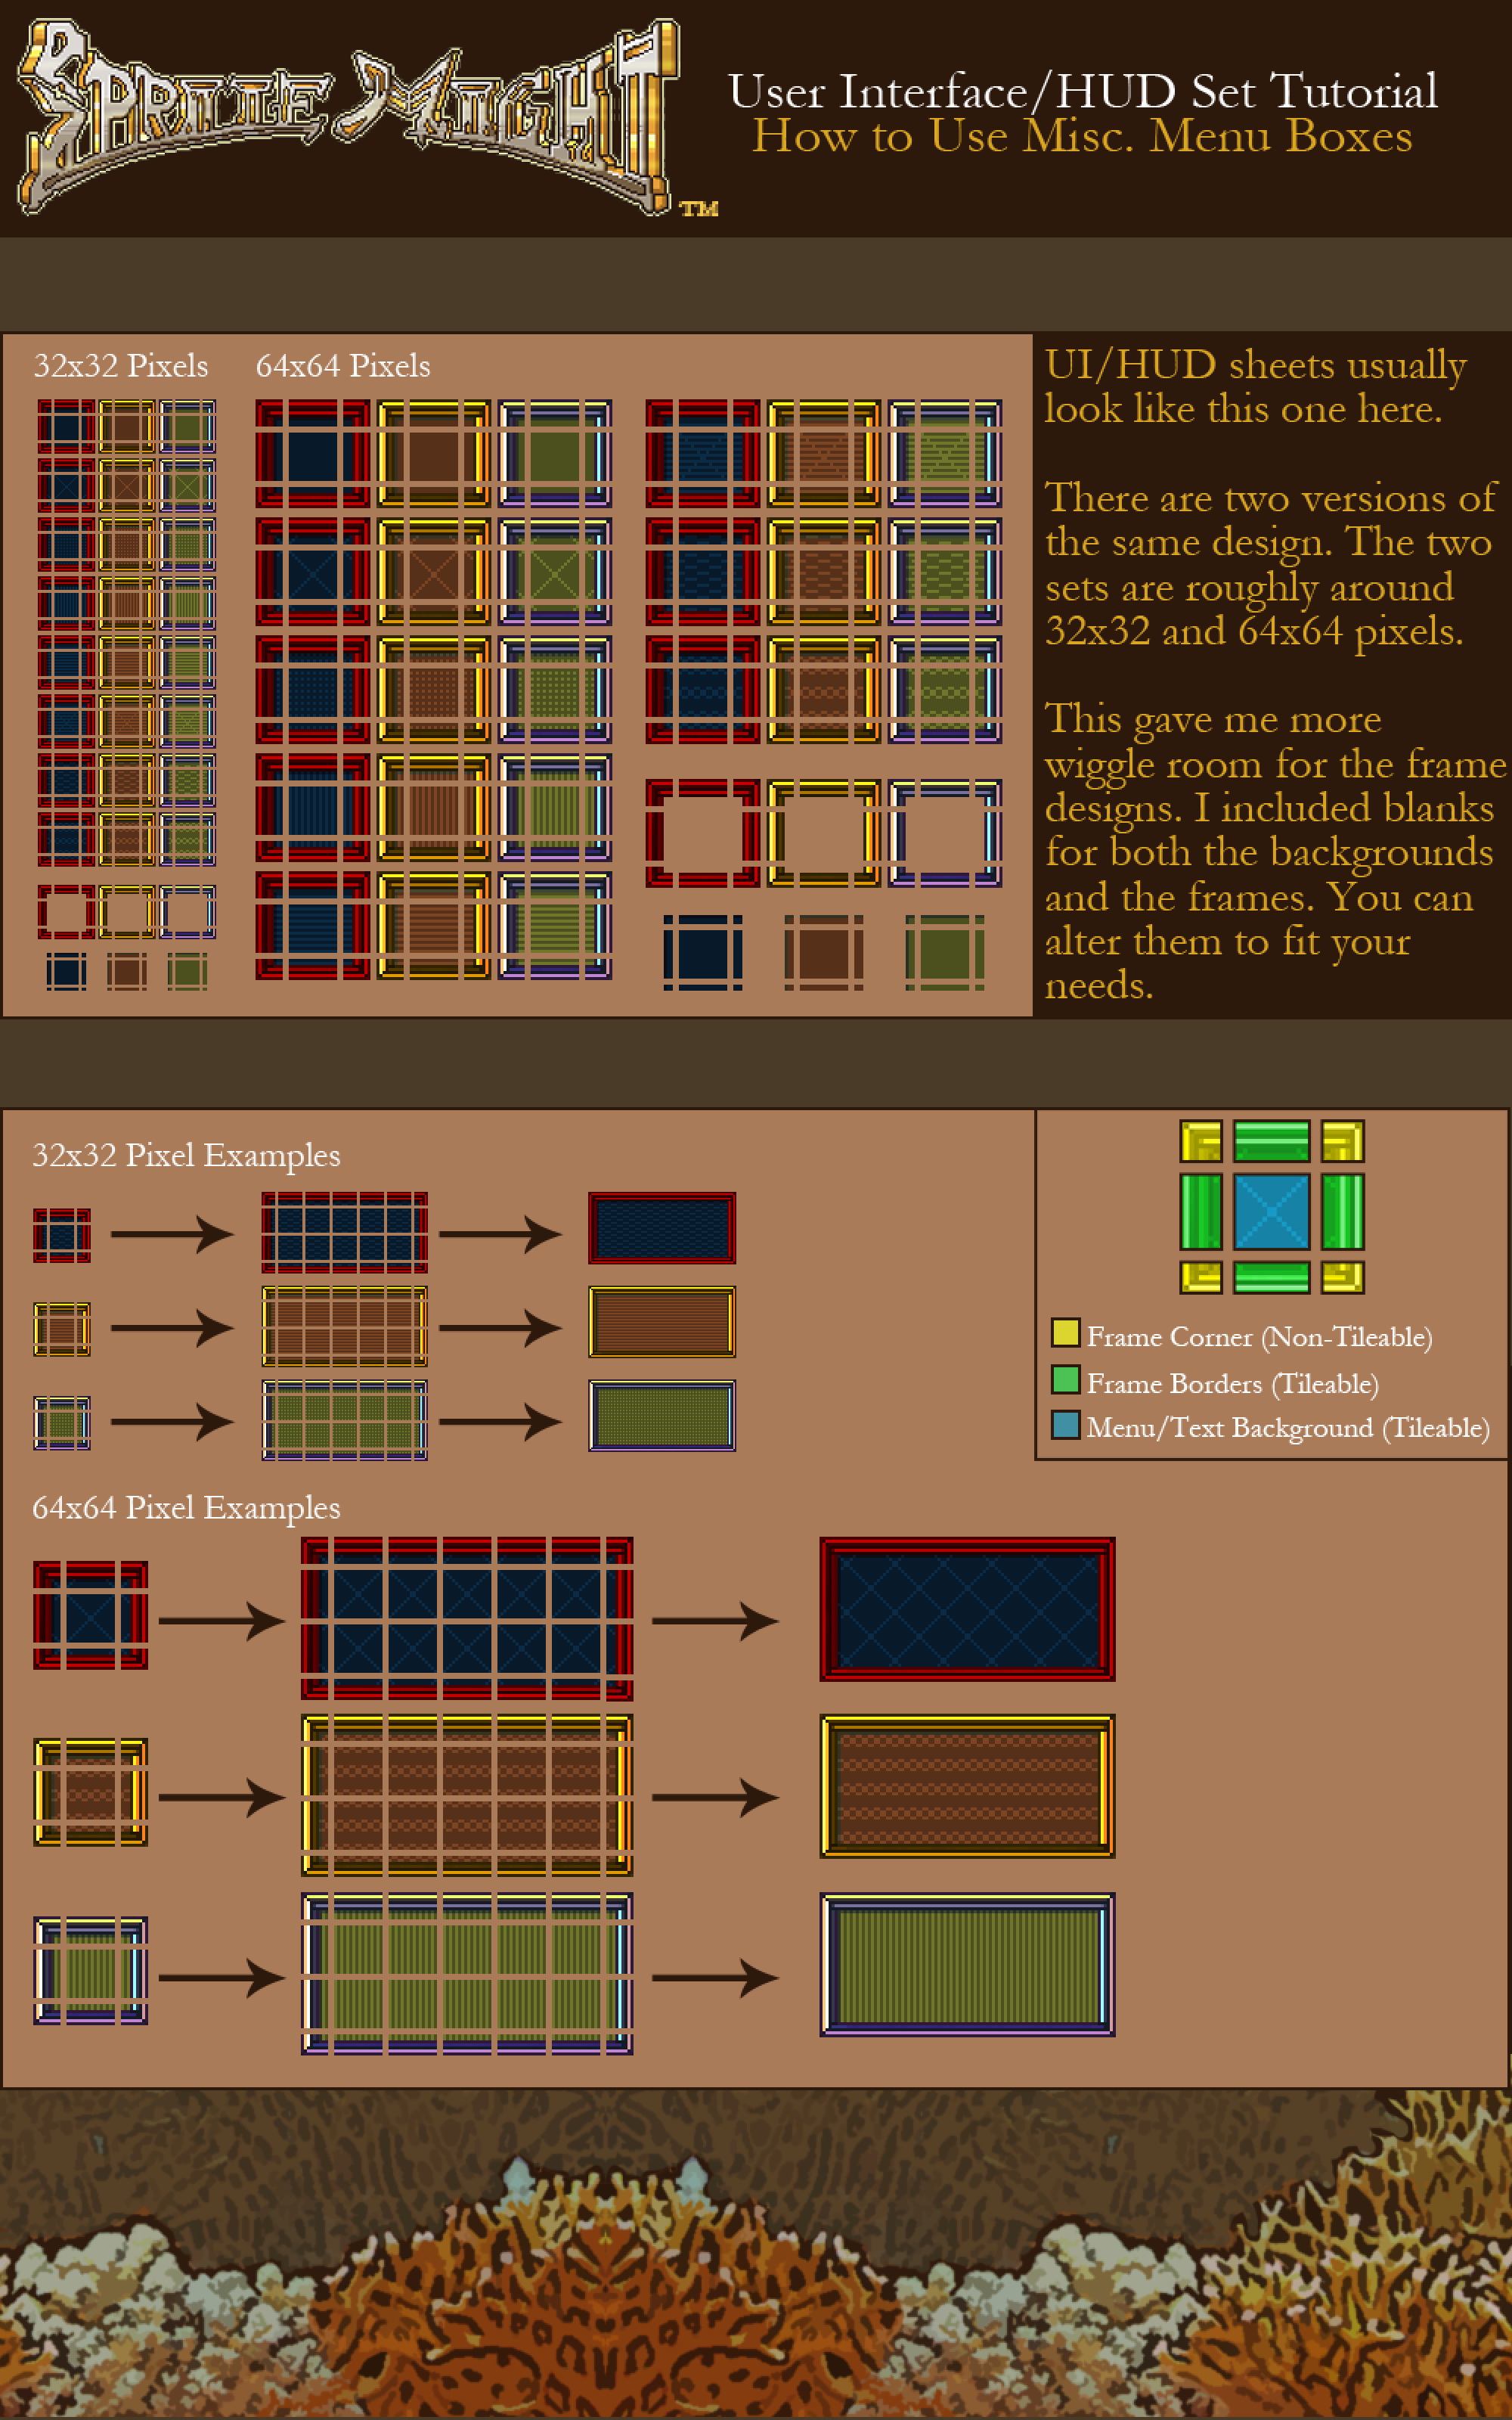 Pin by Cabit Dead on texture pack | Texture packs, Rpg maker